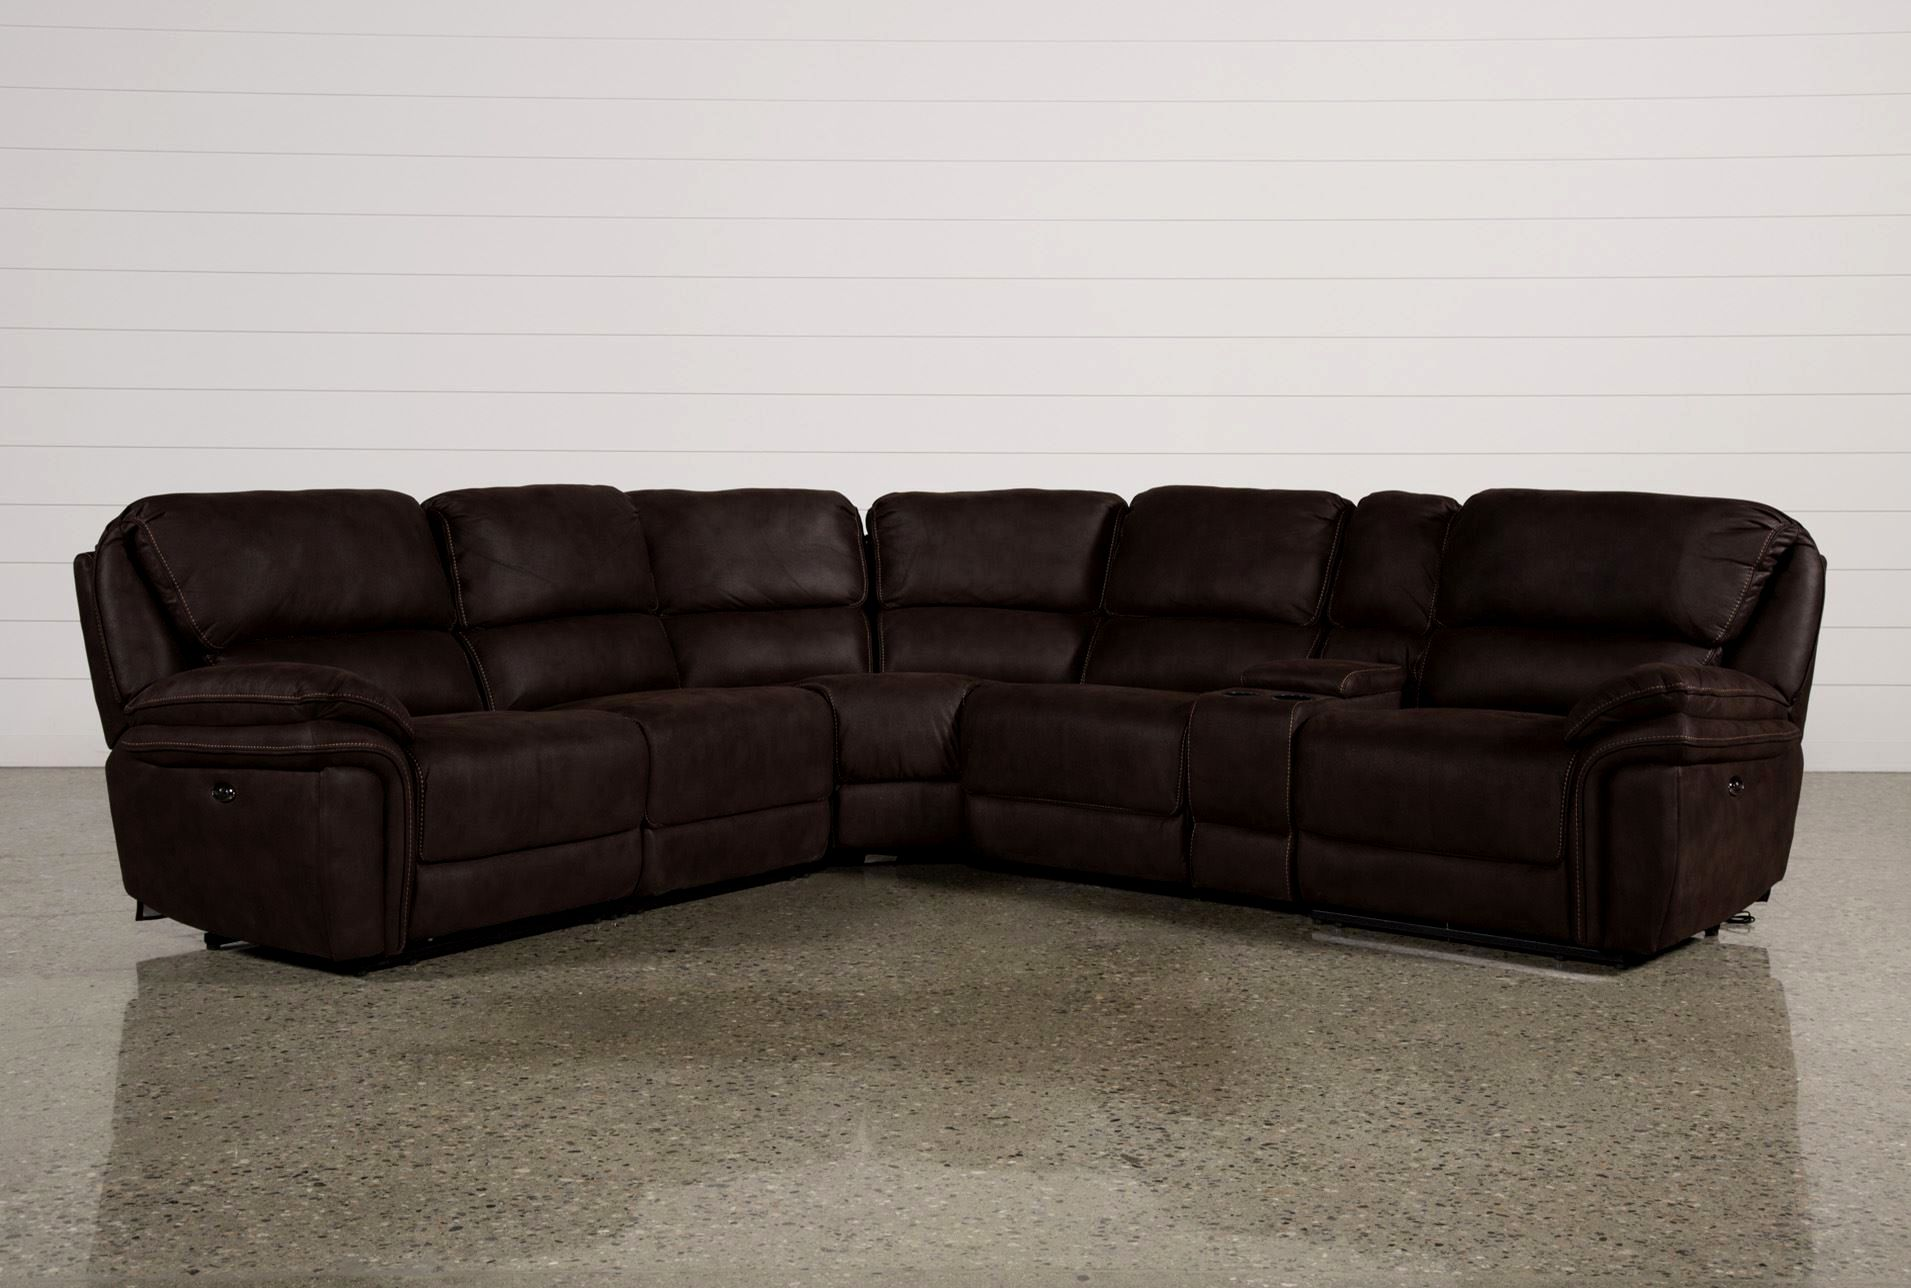 lovely sofa sectionals on sale photo-Terrific sofa Sectionals On Sale Décor